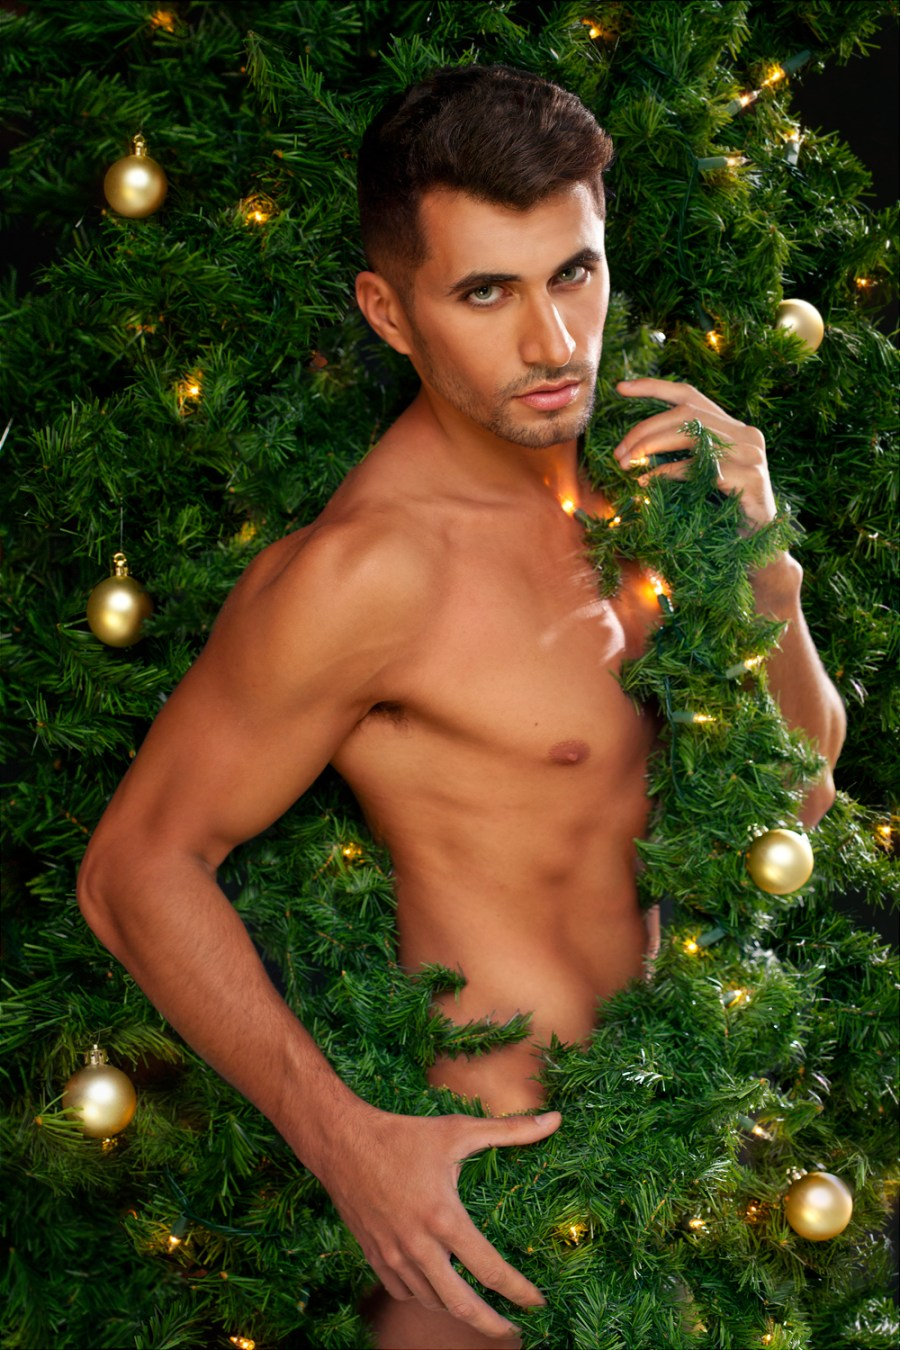 Merry Christmas! 🎄🌟 All wrapped up and ready to go - JONO Photography comes to Fashionably Male wishes to all of us a Merry Merry Christmas featuring male Marcio Carvalho shot in the studio lighting our hearts.